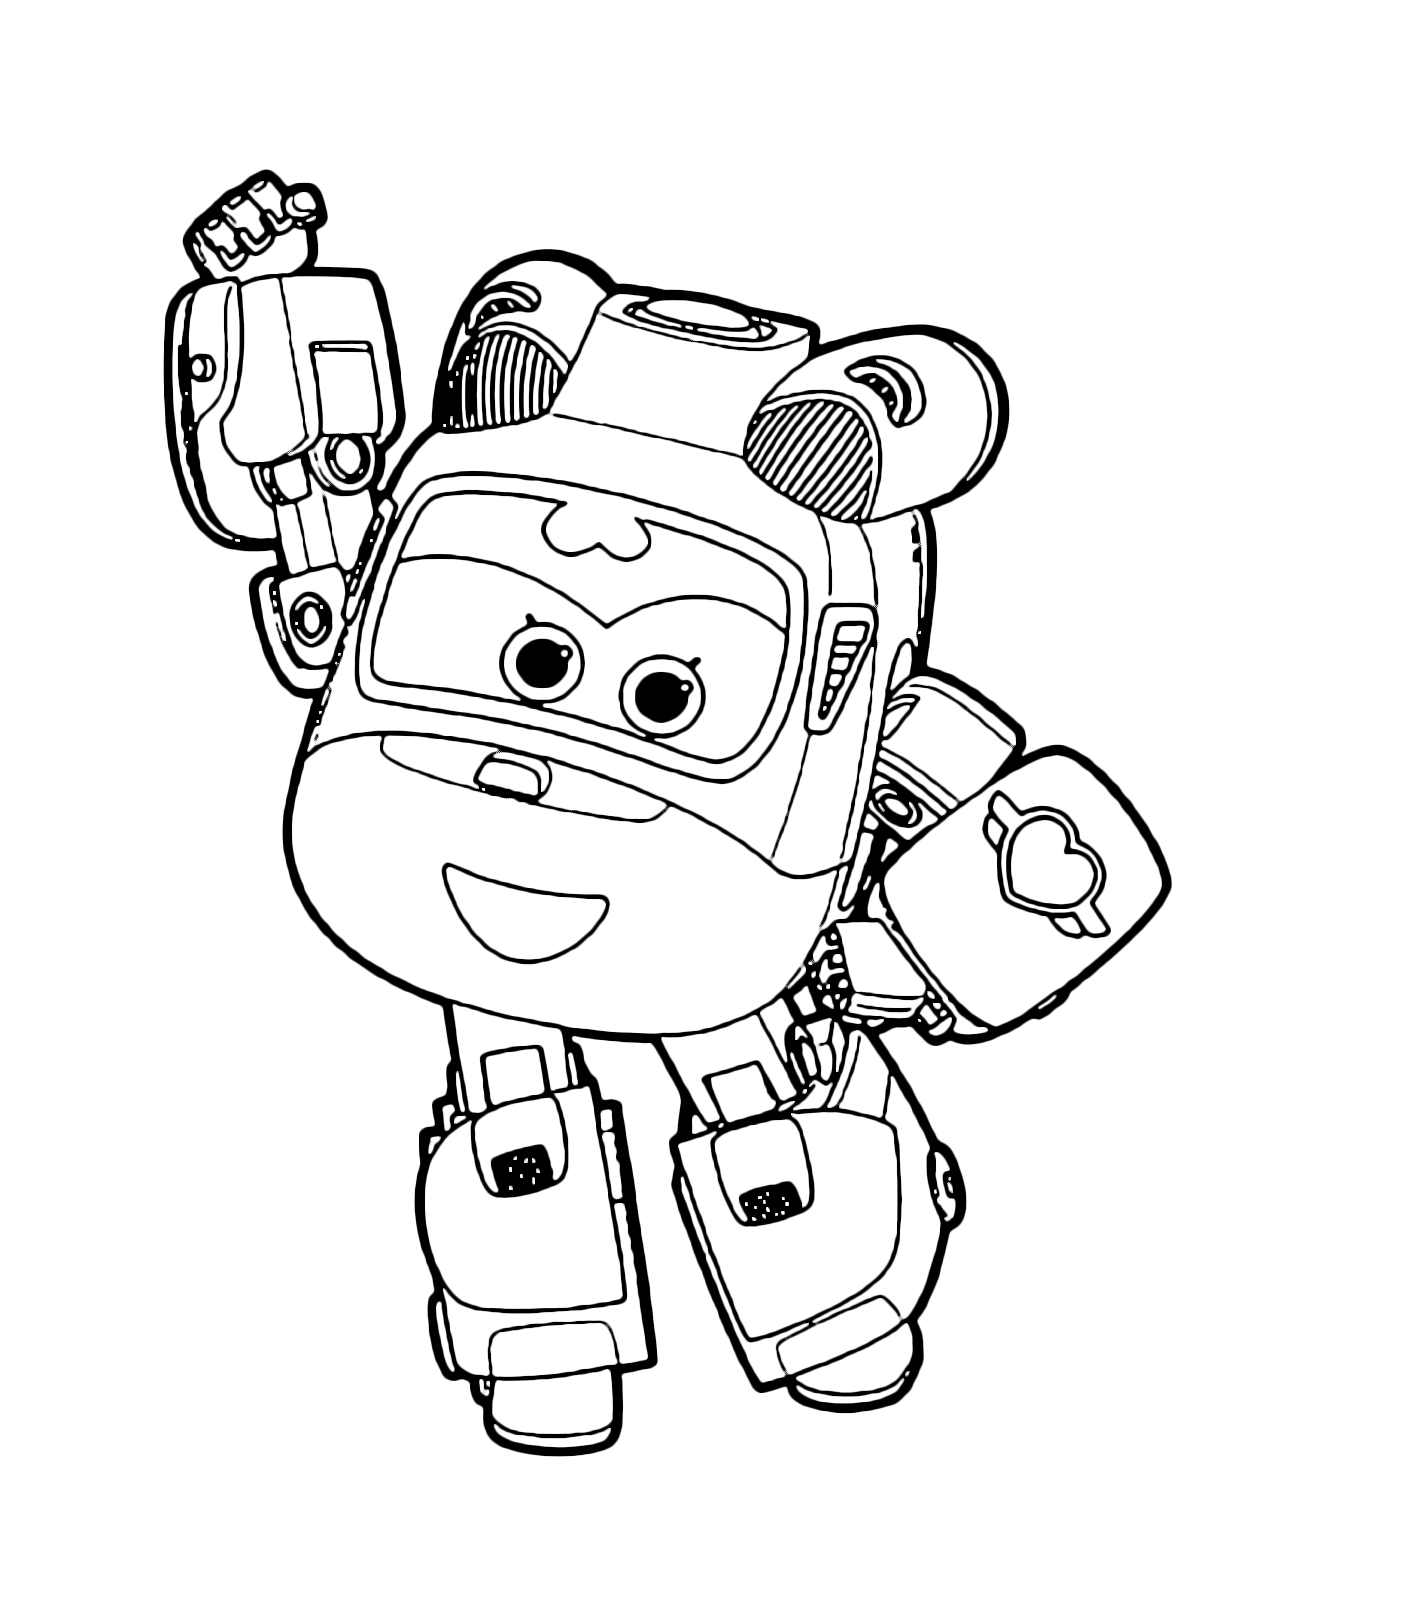 Super wings dizzy la star del salvataggio for Disegni da colorare super wings